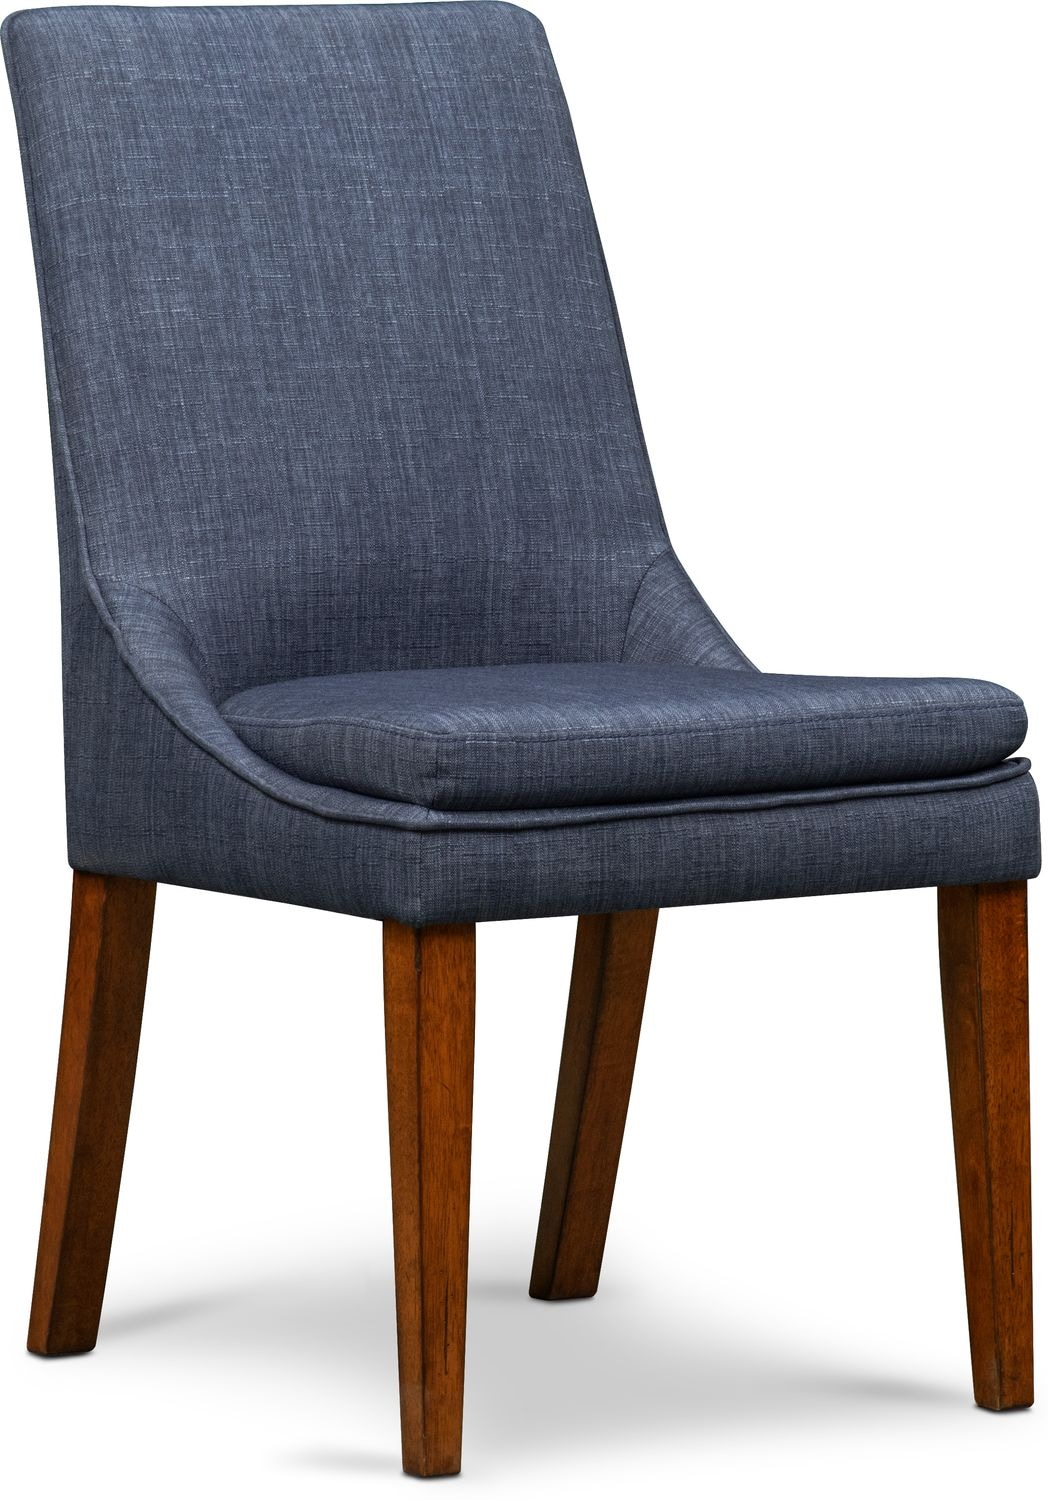 Adler Upholstered Side Chair - Indigo  sc 1 st  Value City Furniture : what is a side chair - Cheerinfomania.Com